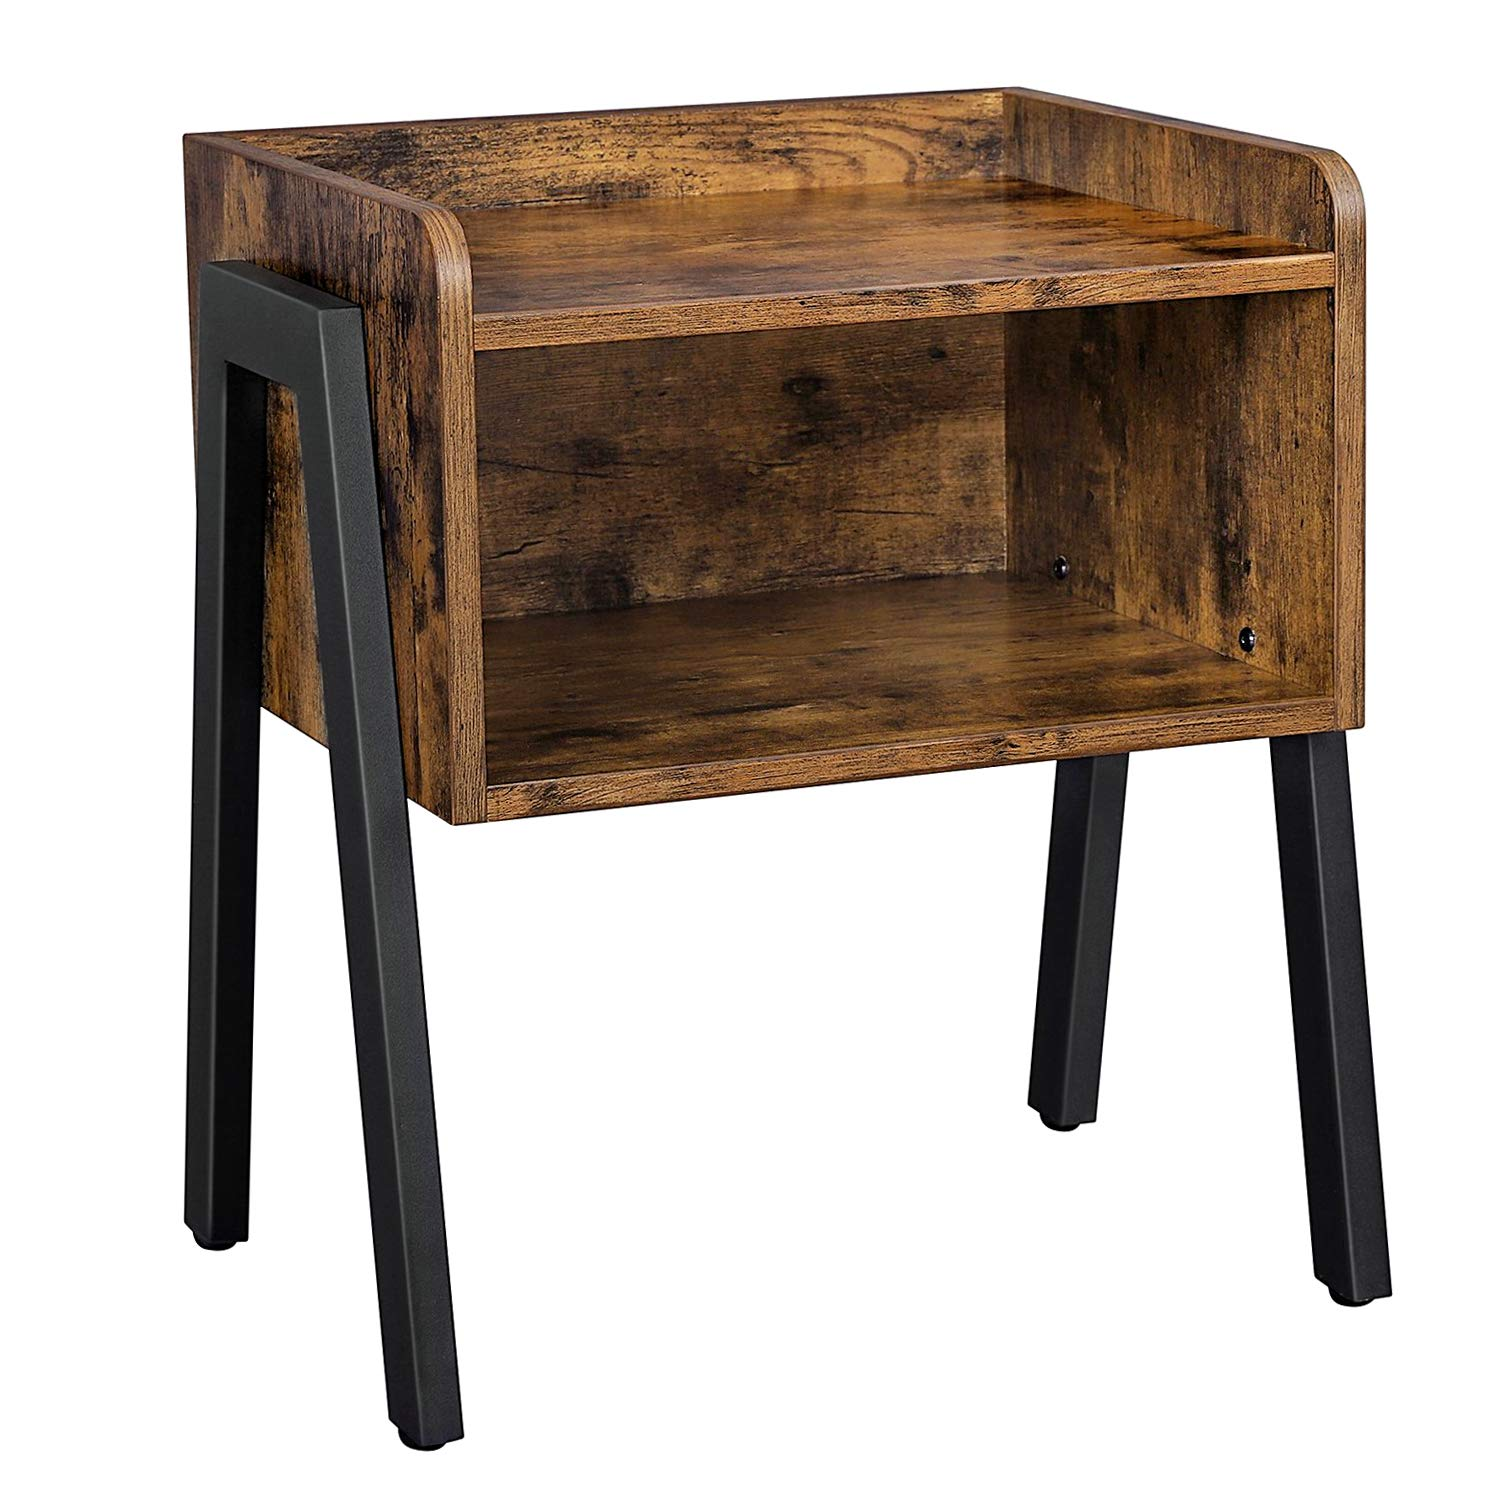 Enjoy fast, free nationwide shipping!  Family owned and operated, HawkinsWoodshop.com is your one stop shop for affordable furniture.  Shop HawkinsWoodshop.com for solid wood & metal modern, traditional, contemporary, industrial, custom, rustic, and farmhouse furniture including our Ryan Open Drawer Industrial Farmhouse Nightstand.